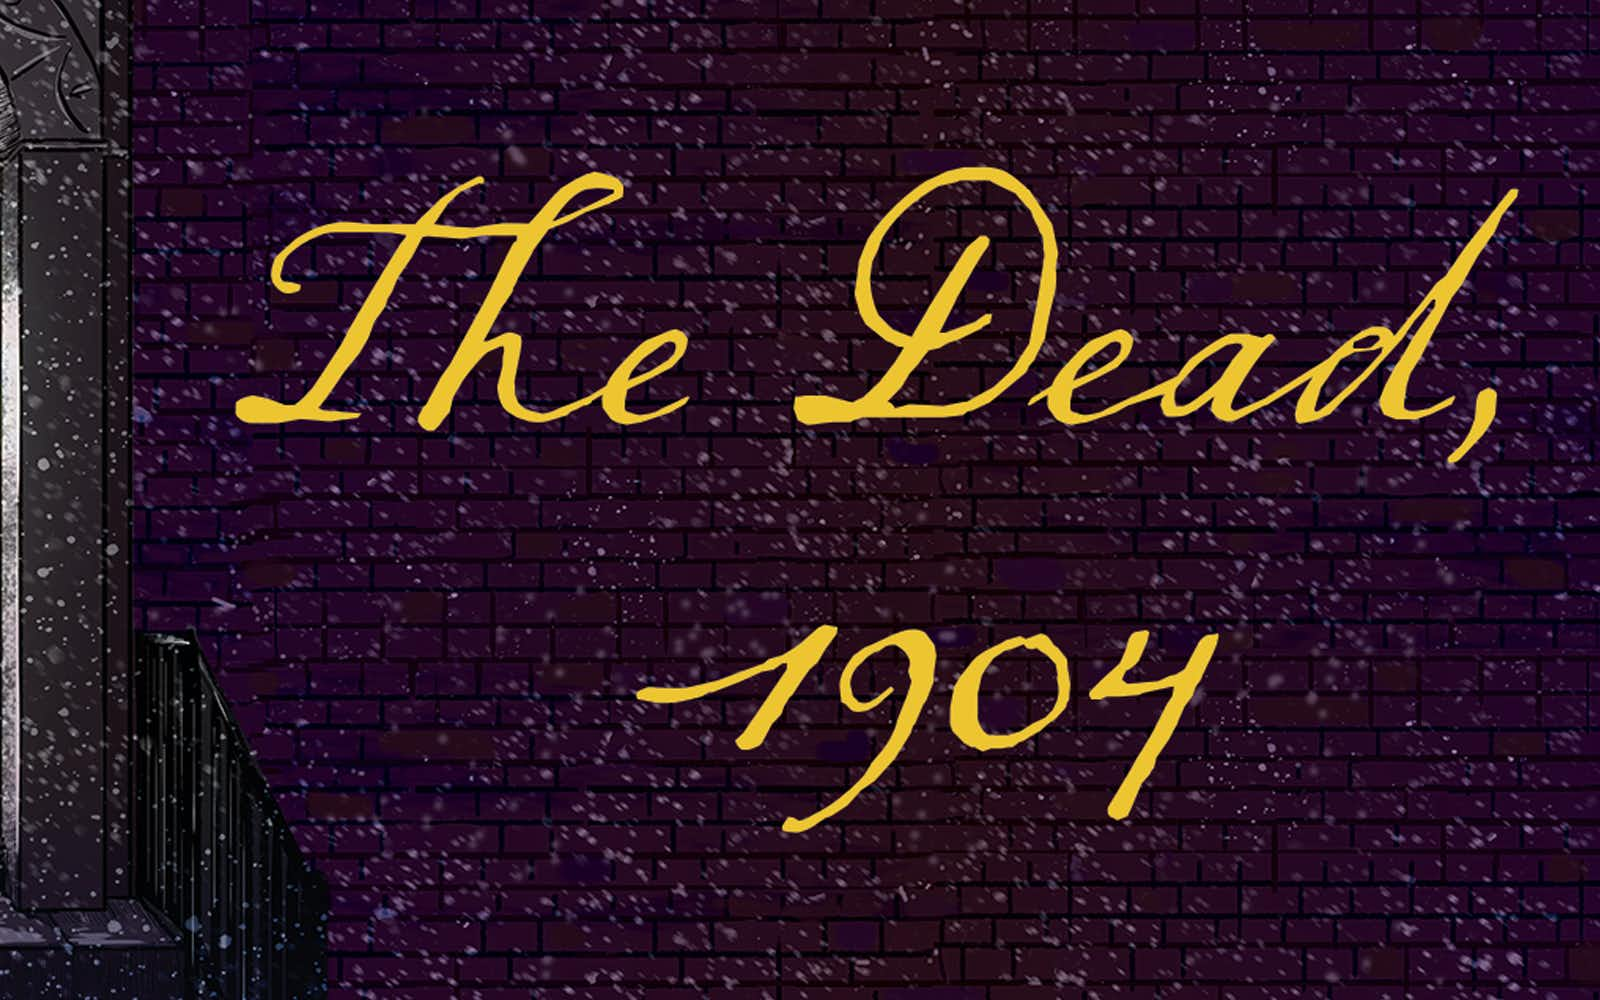 the dead 1904 tickets